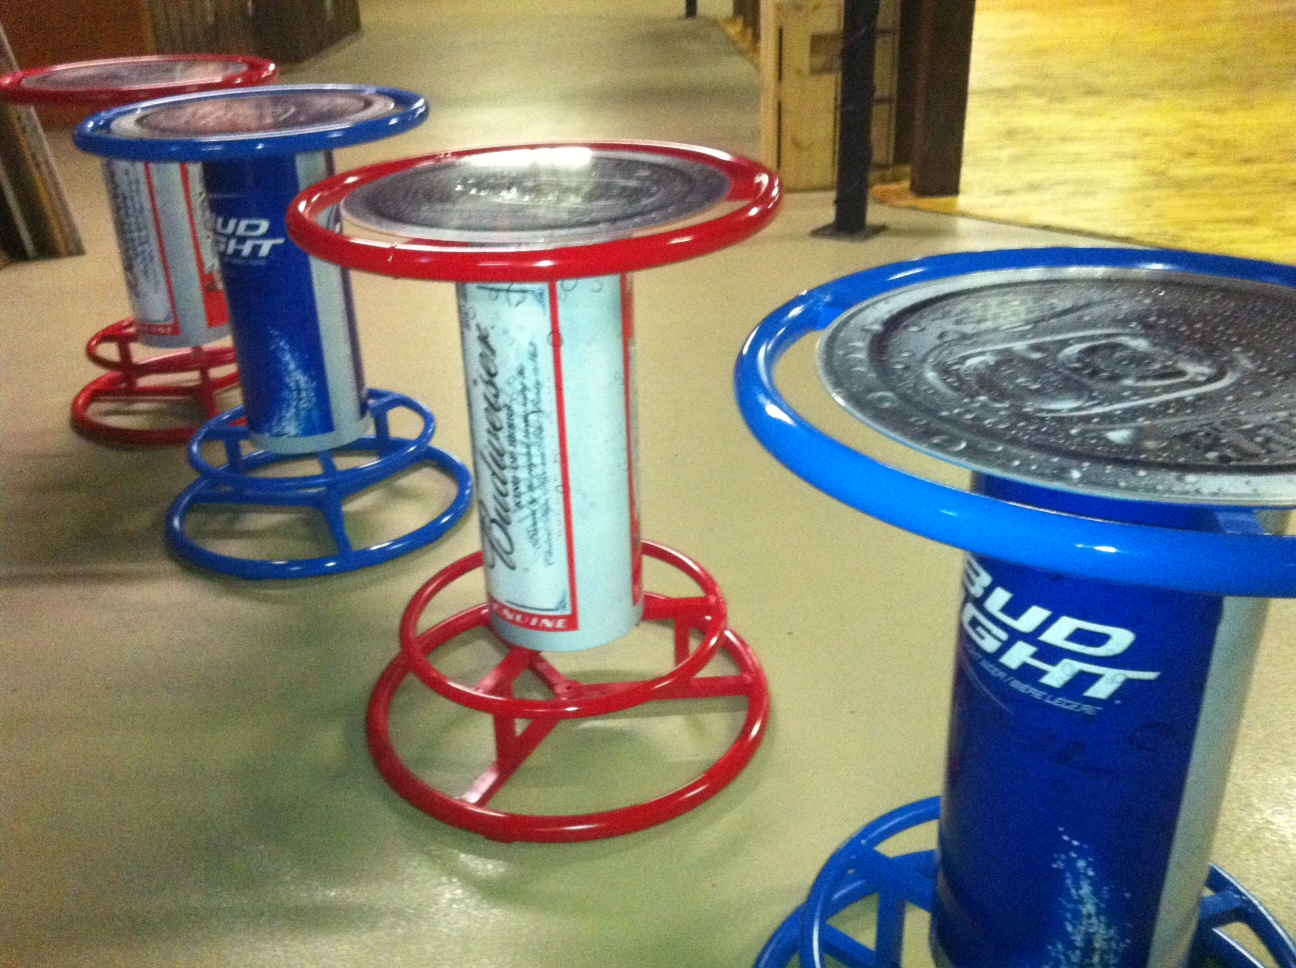 Incroyable Here Are Some Photou0027s Of The Bar Table Wraps We Did For The Ranch. Branded  With Bud And Bud Light.